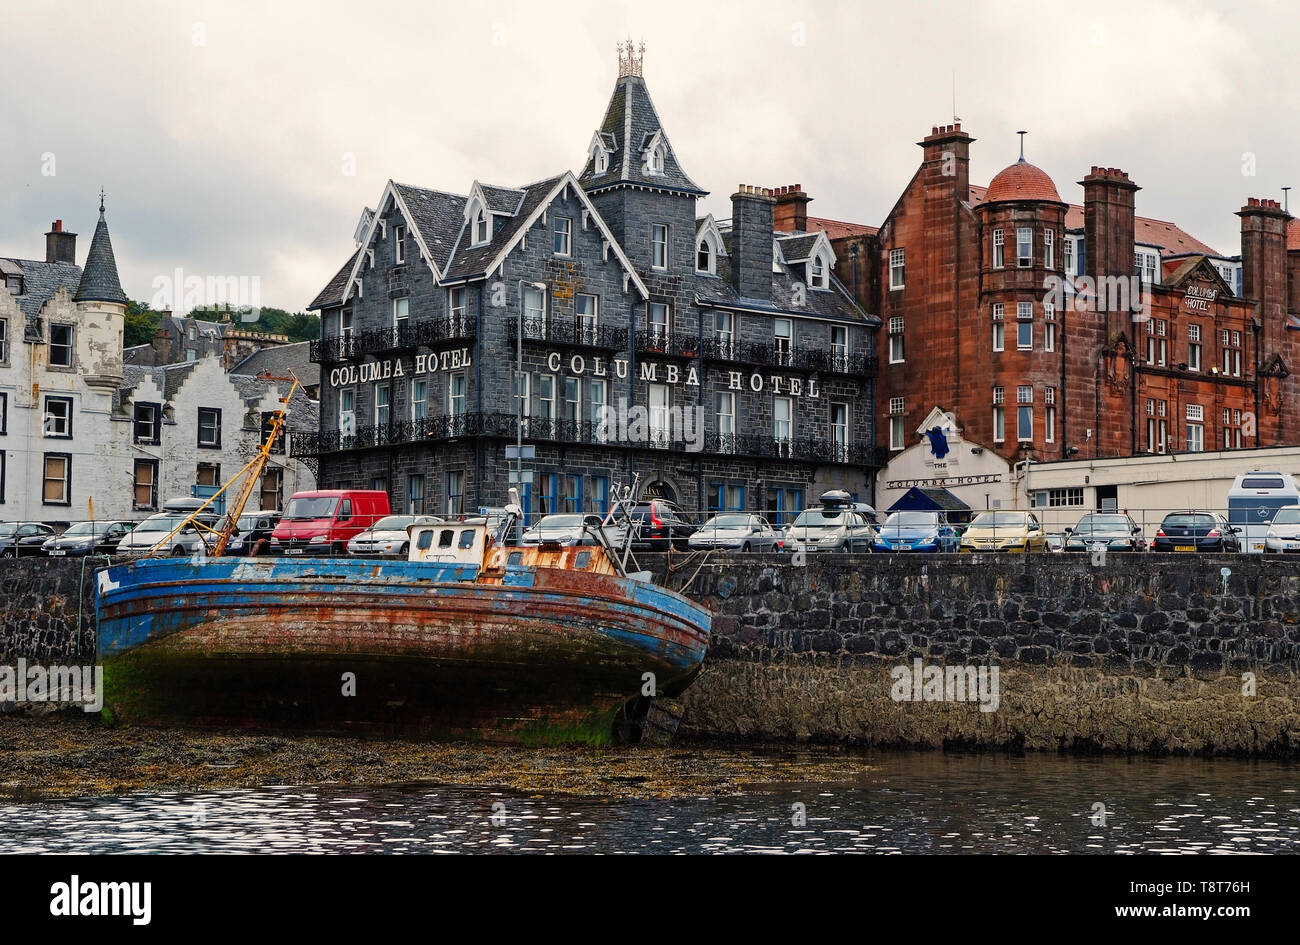 Oban, United Kingdom - February 20, 2010: shipwreck and city architecture along sea quay. Bay with houses on grey sky. Resort town with hotels. Summer vacation on island. Travelling and wanderlust. - Stock Image